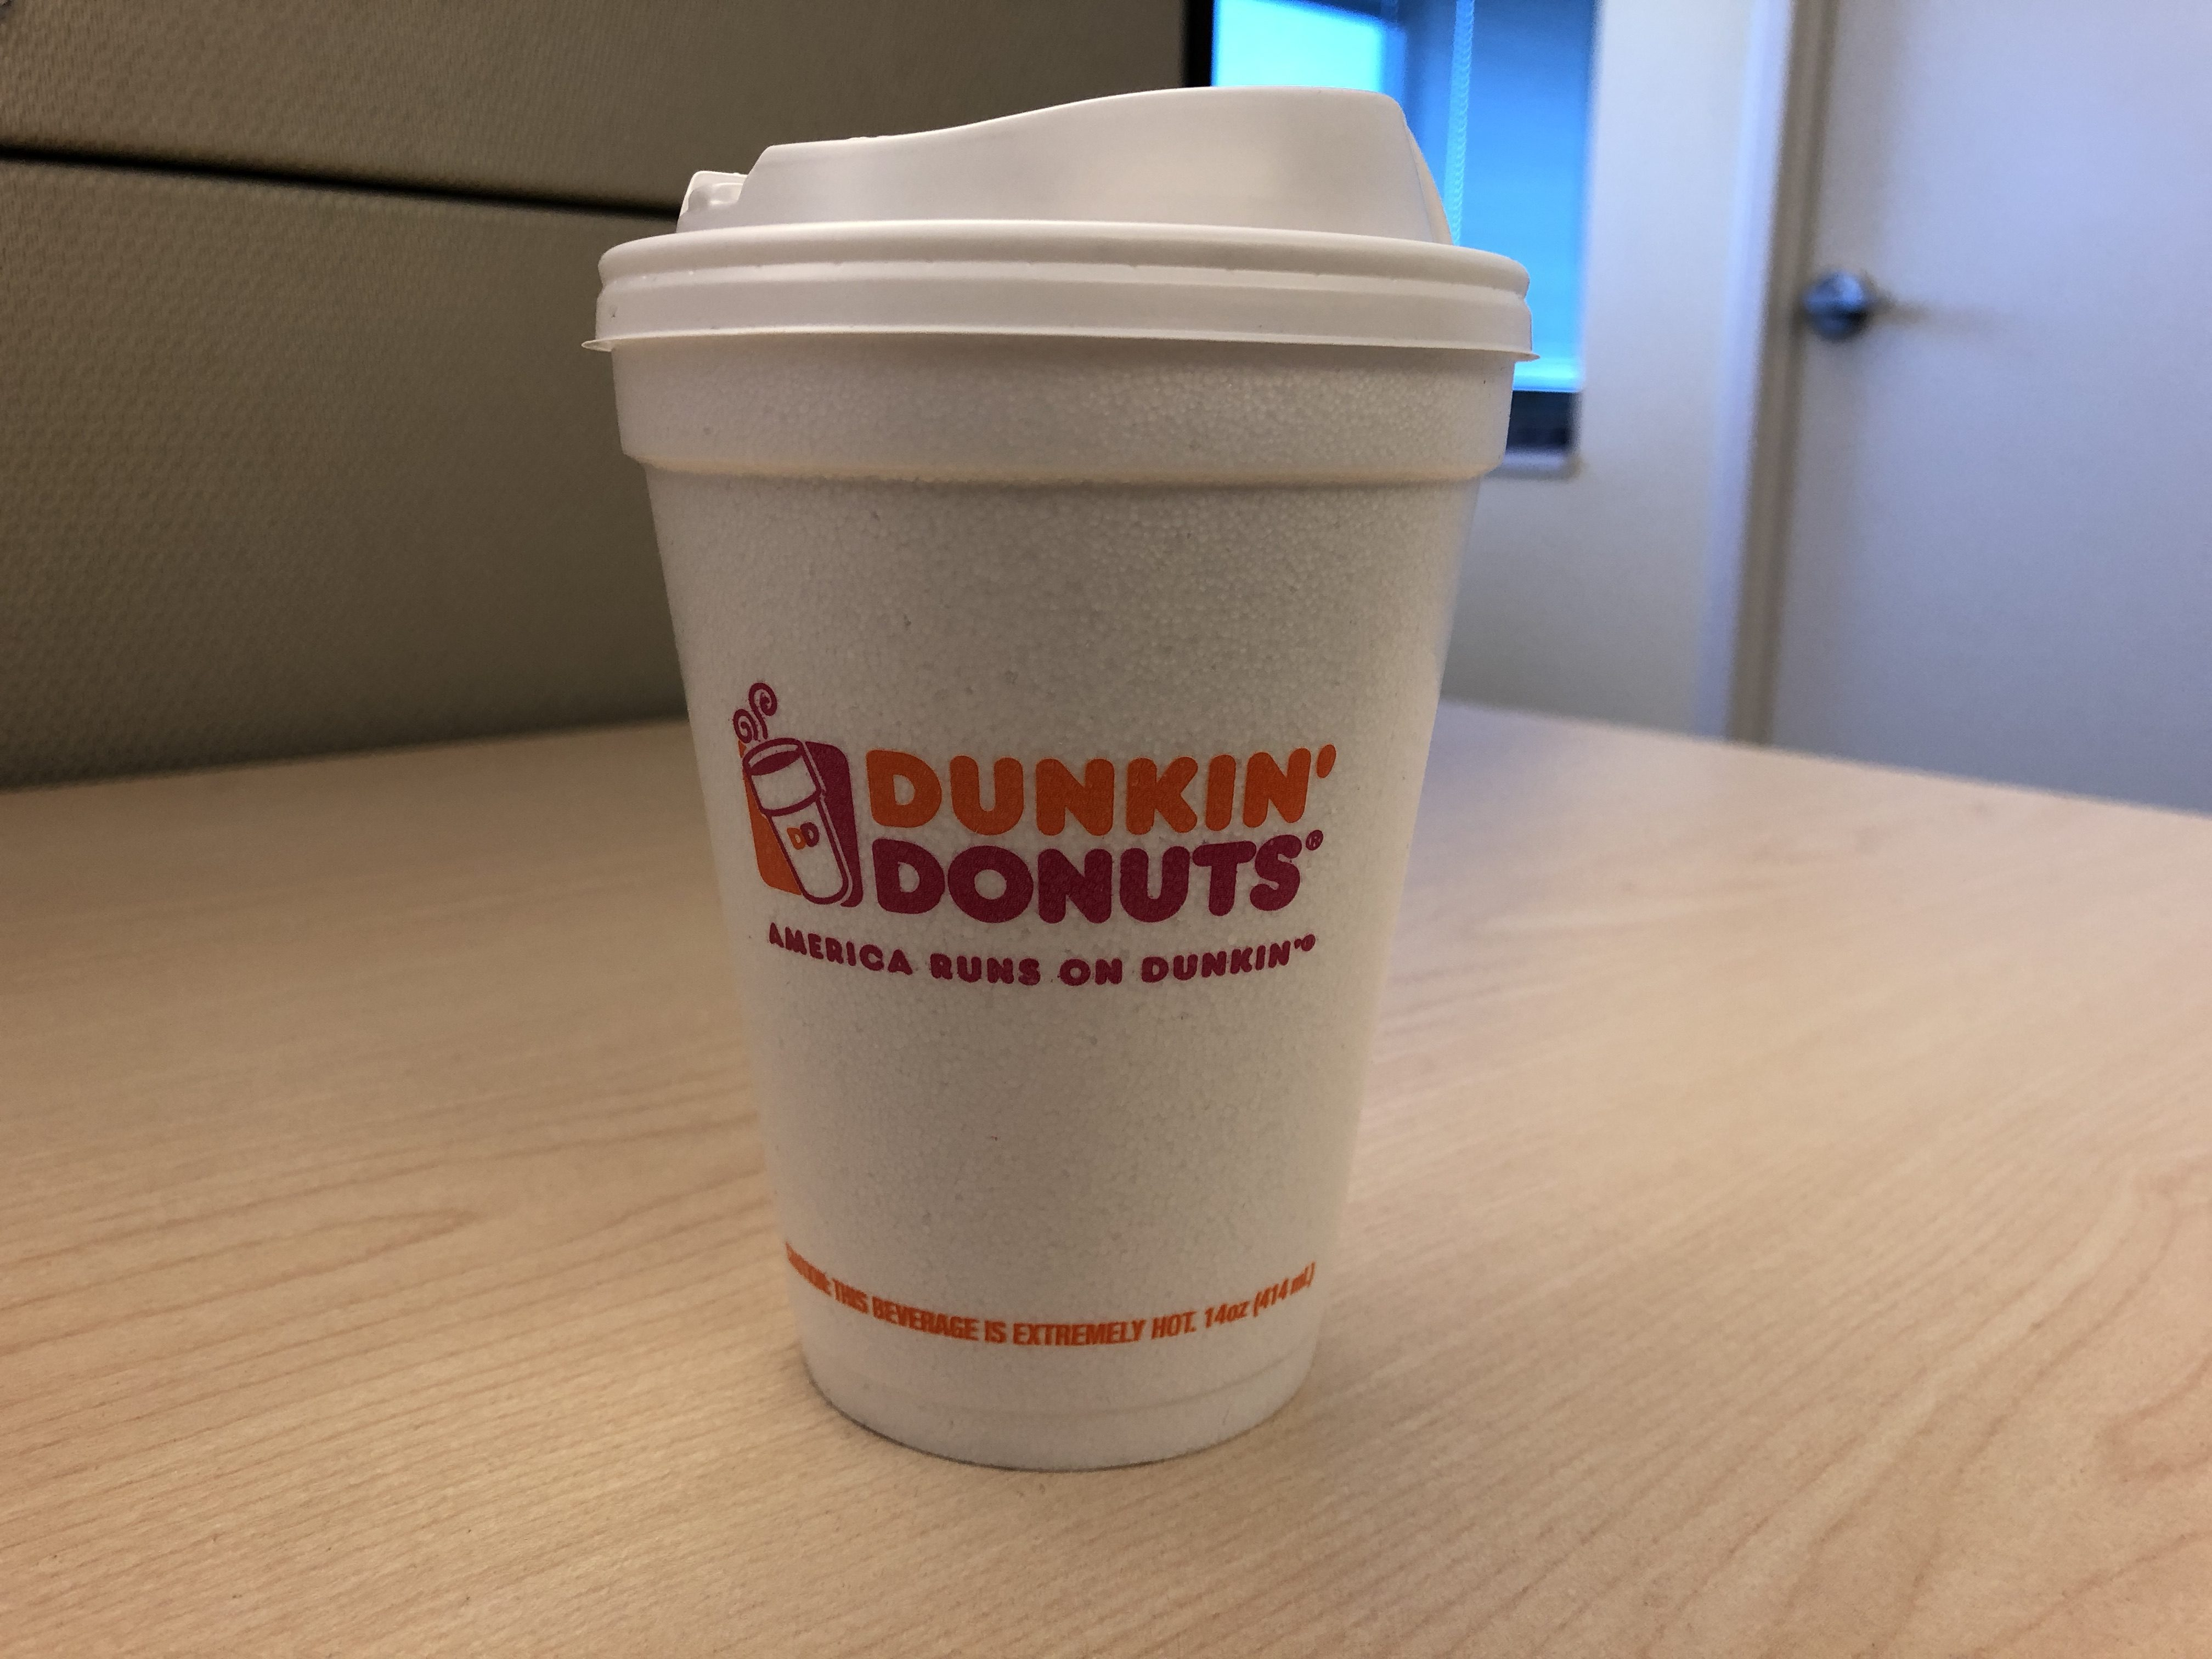 Dunkin' orders its coffee in a paper cup